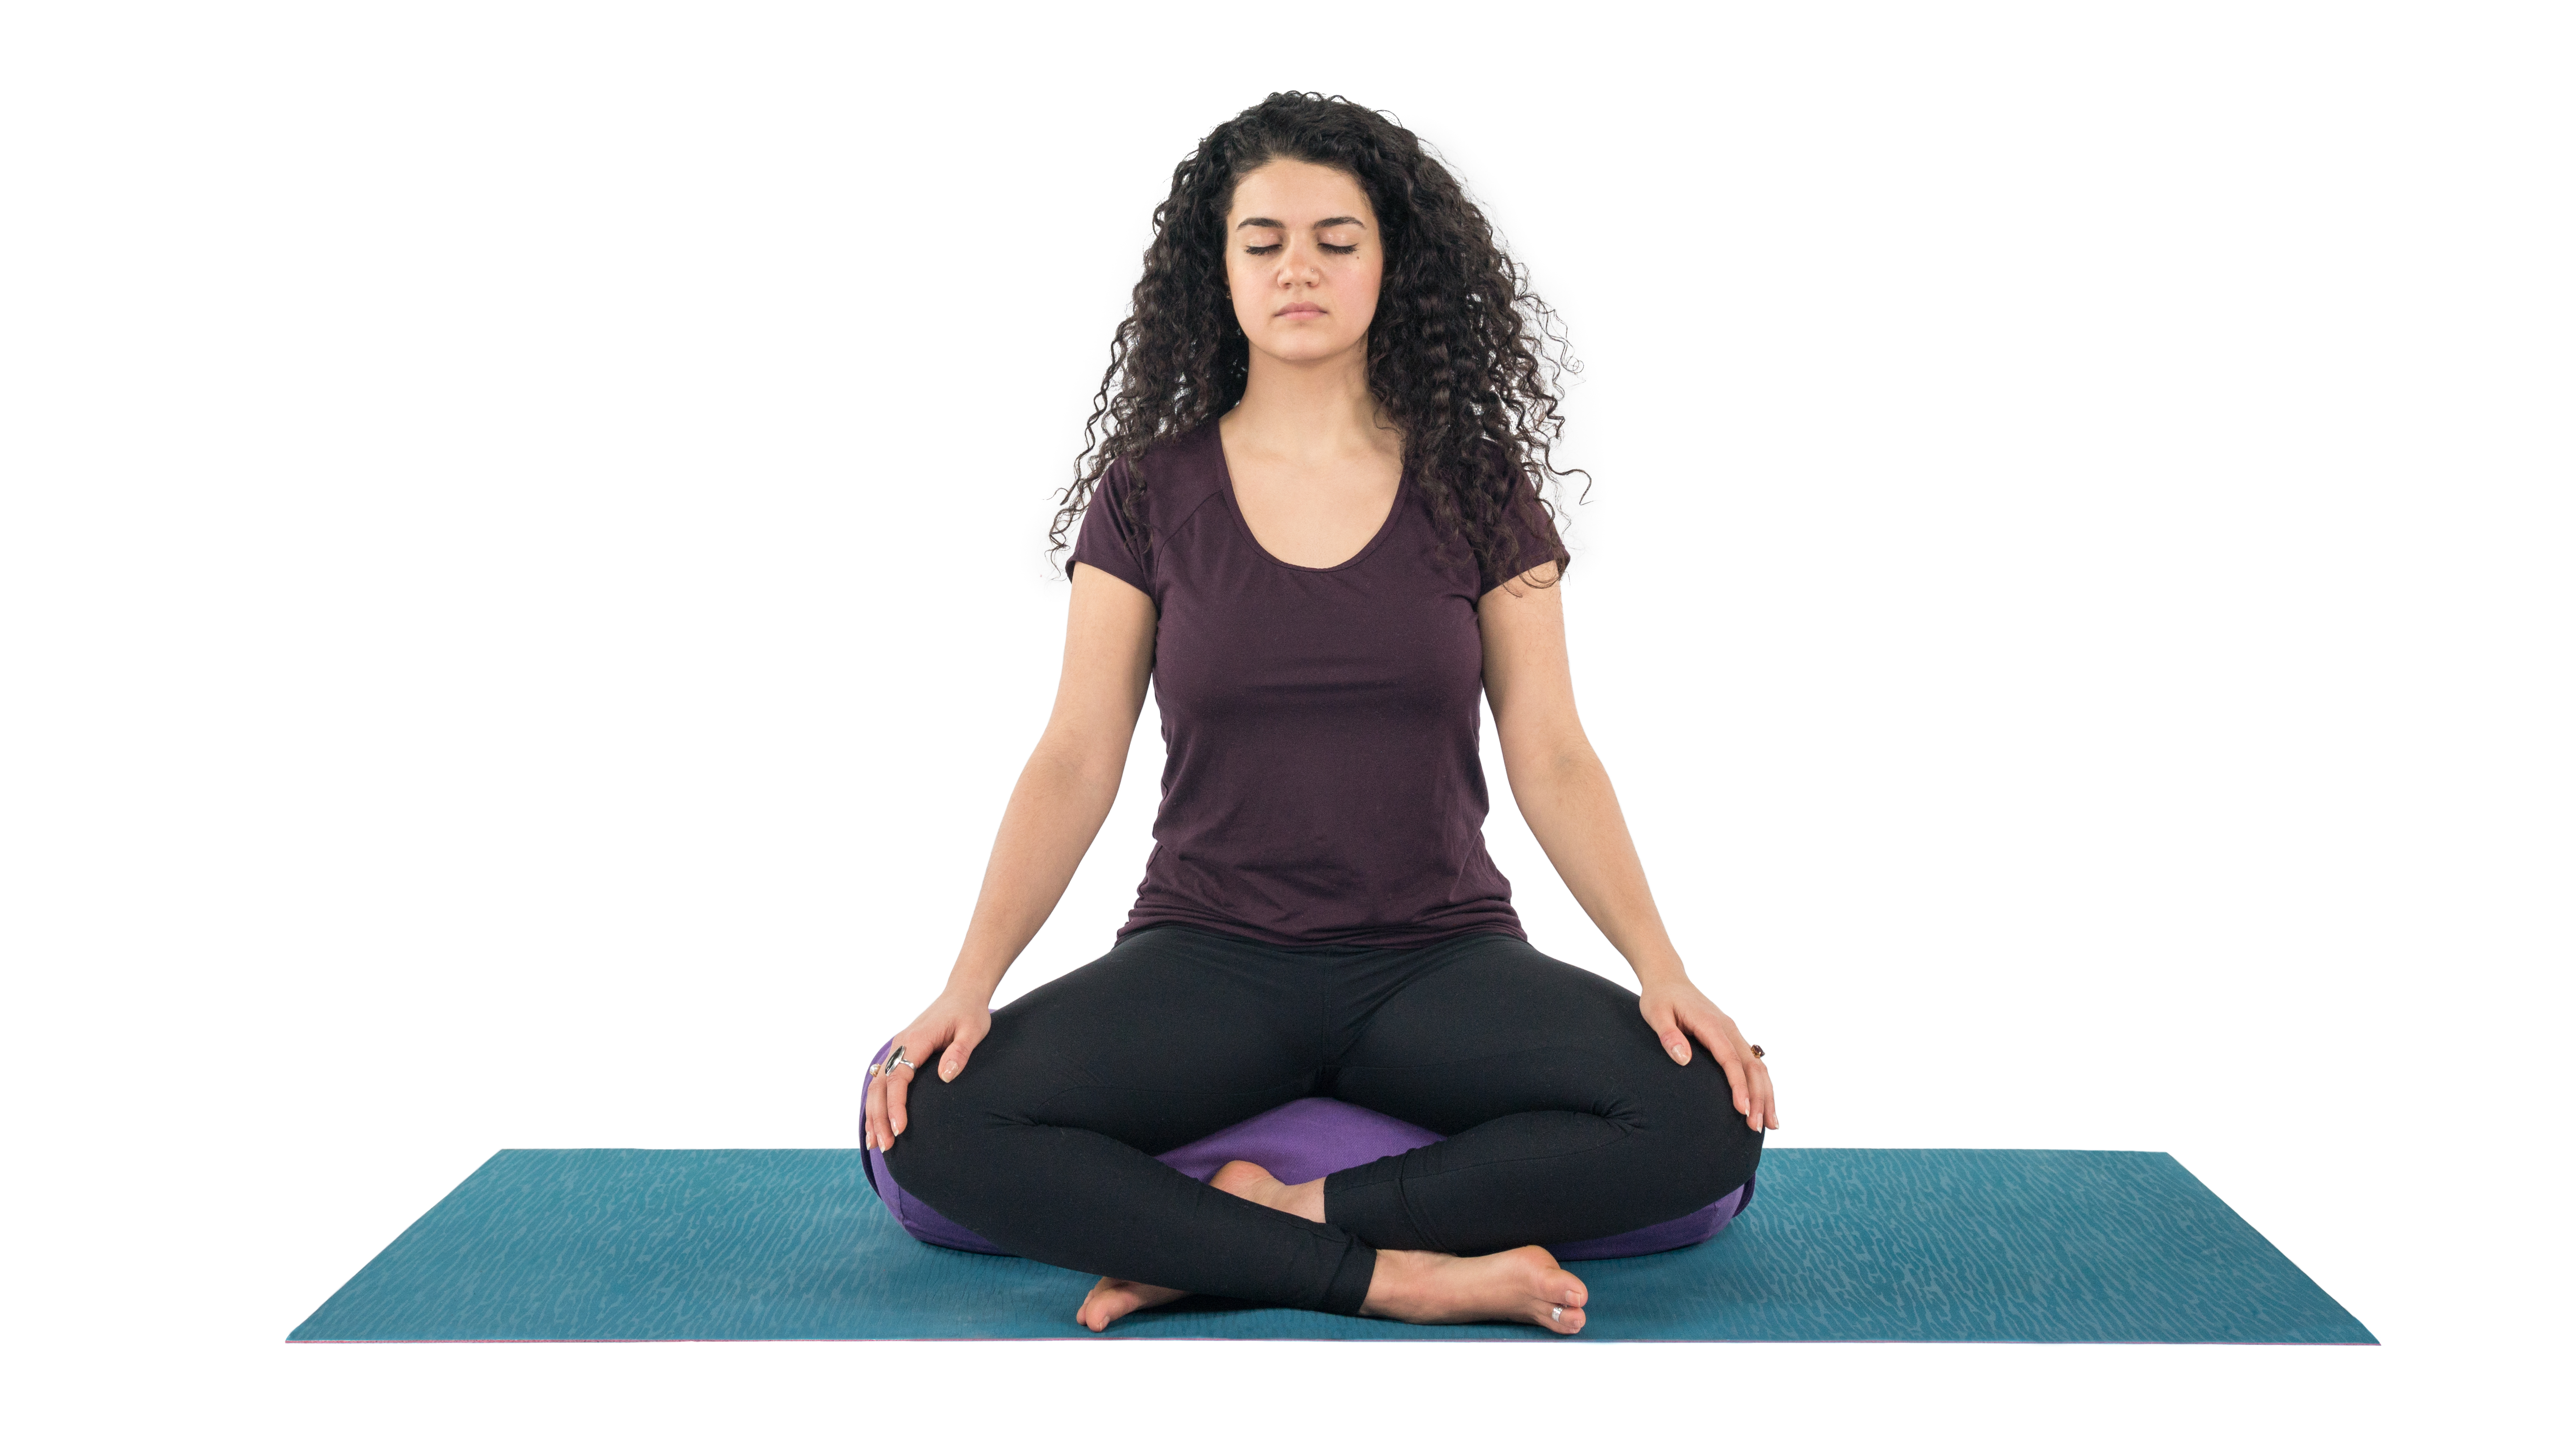 Meditation, beginner's yoga, quiet time, sukasana, self care, yoga to start and end your day